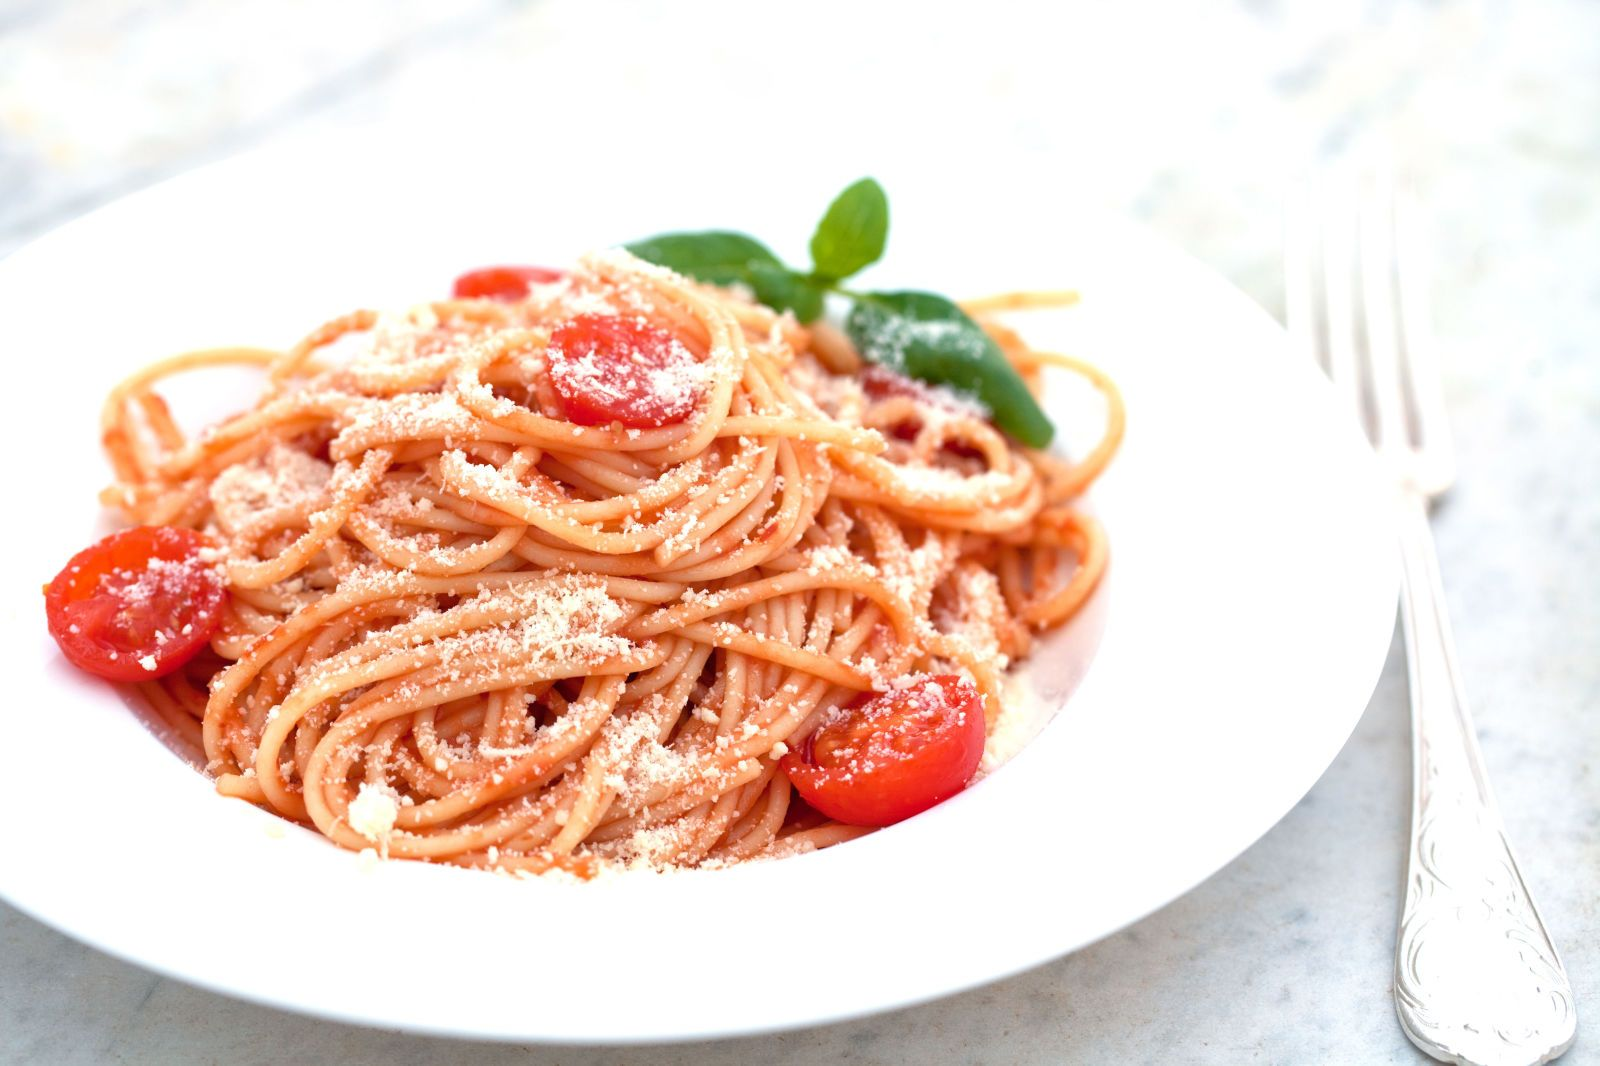 Get The Perfect Portion of Spaghetti Every Time with This Genius Trick  - Delish.com